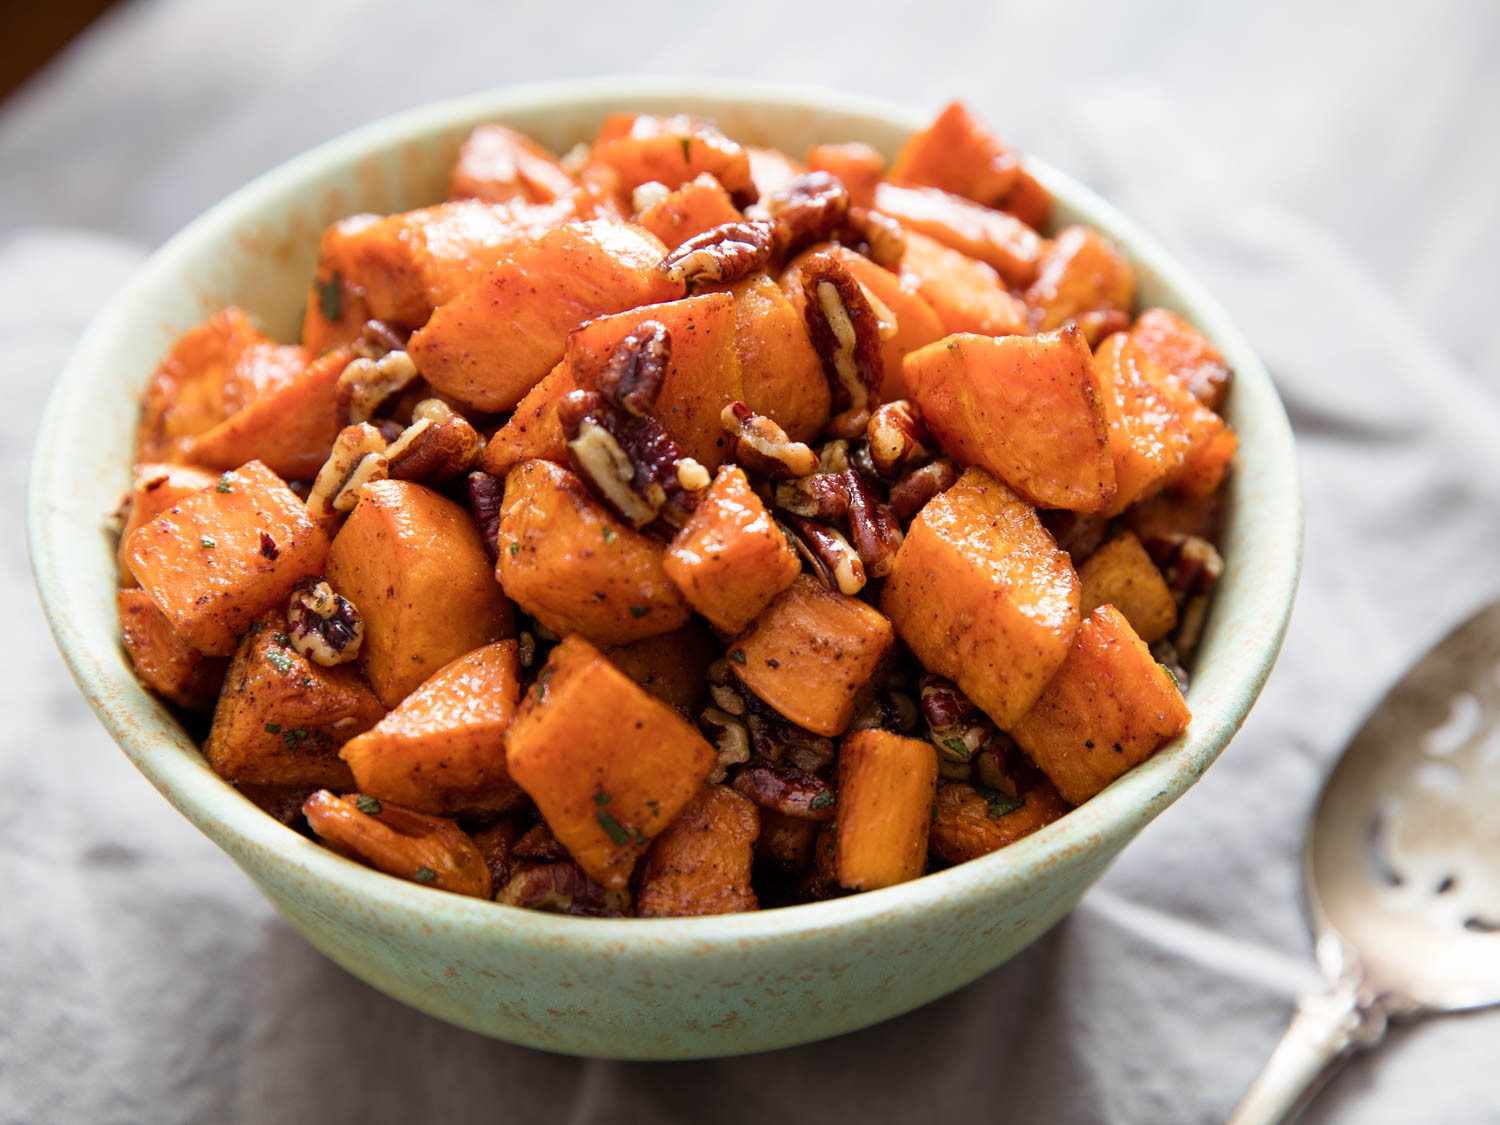 Sweet Potatoes Thanksgiving Recipe  14 Sweet Potato Recipes for Thanksgiving That Are Just